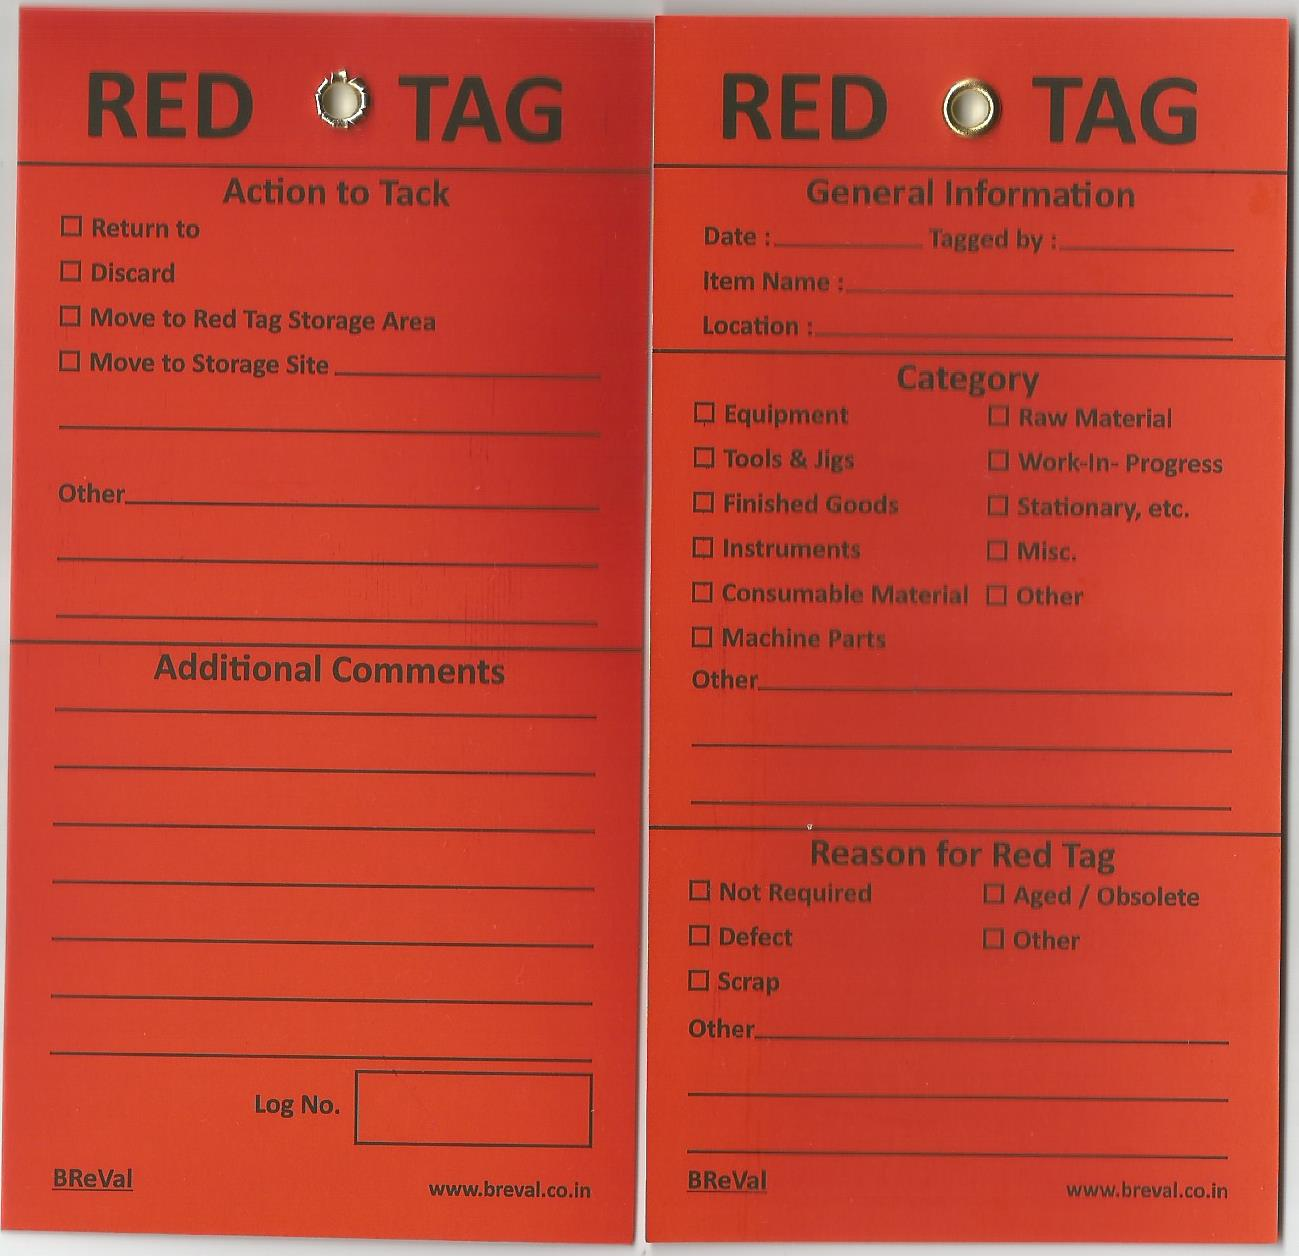 Red Tag Action Kit Available Buy Online At Breval